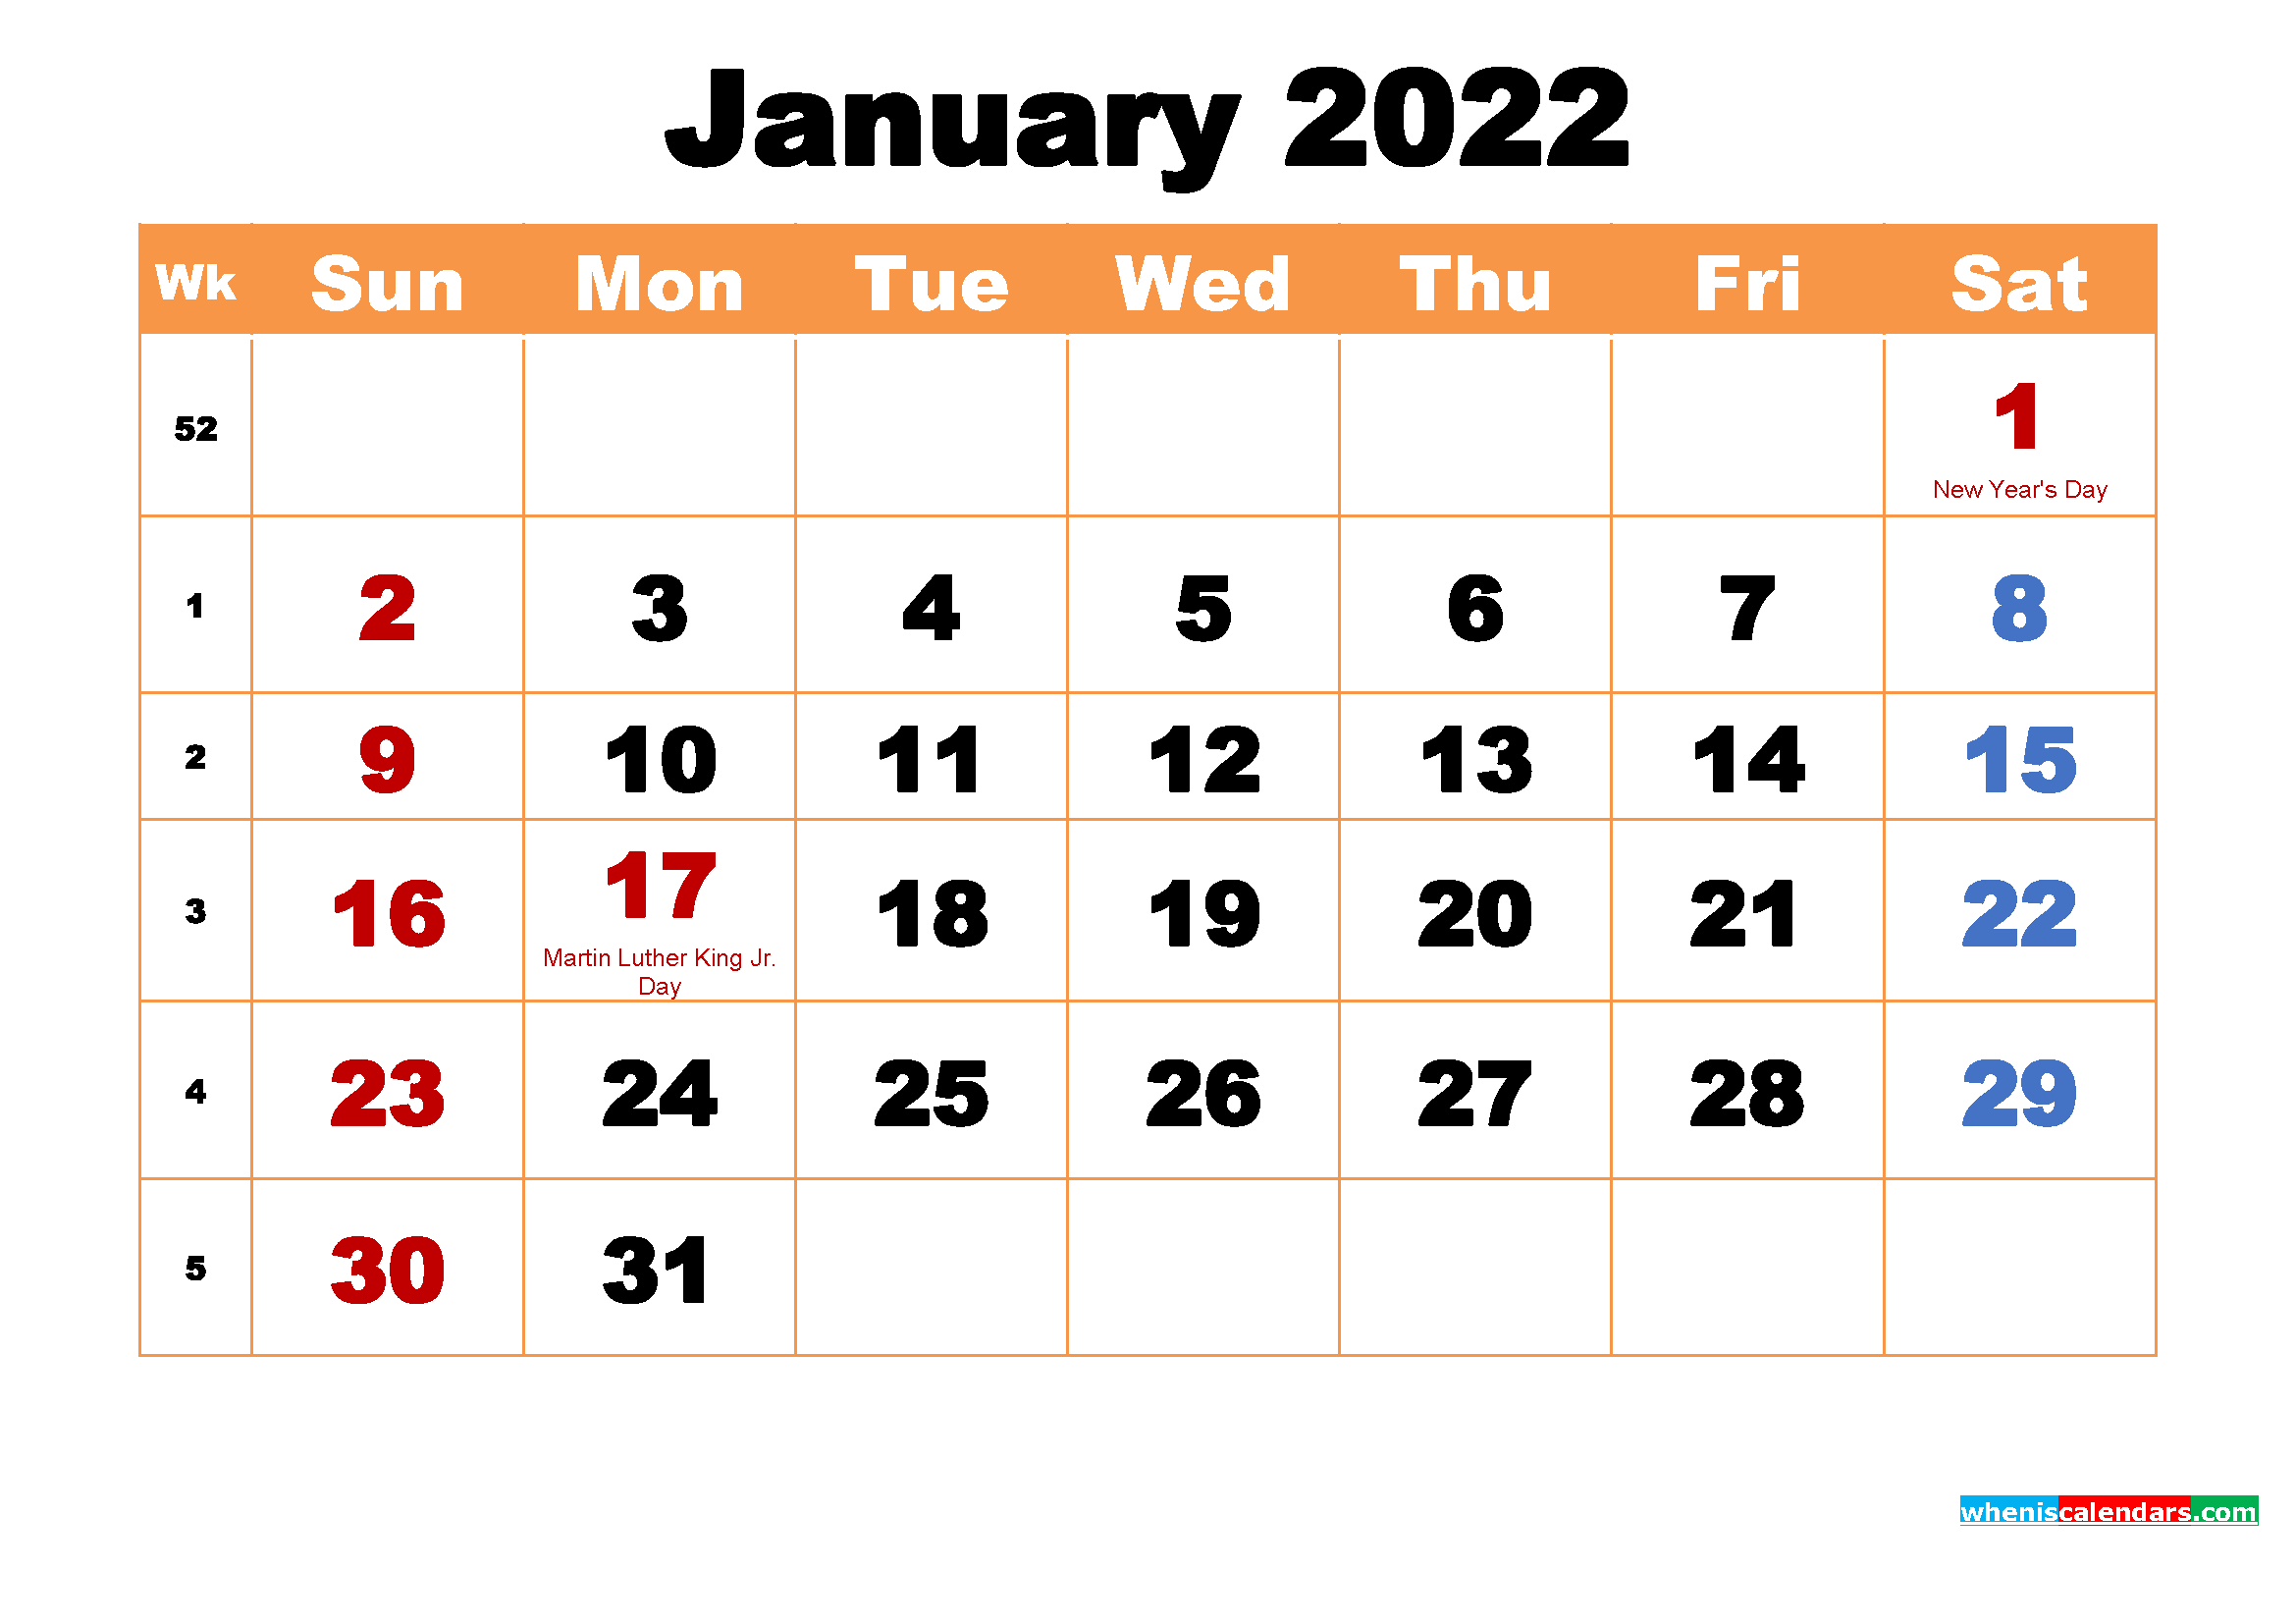 January 2022 Printable Monthly Calendar With Holidays With Regard To Printable Calendar October 2022 To January 2022